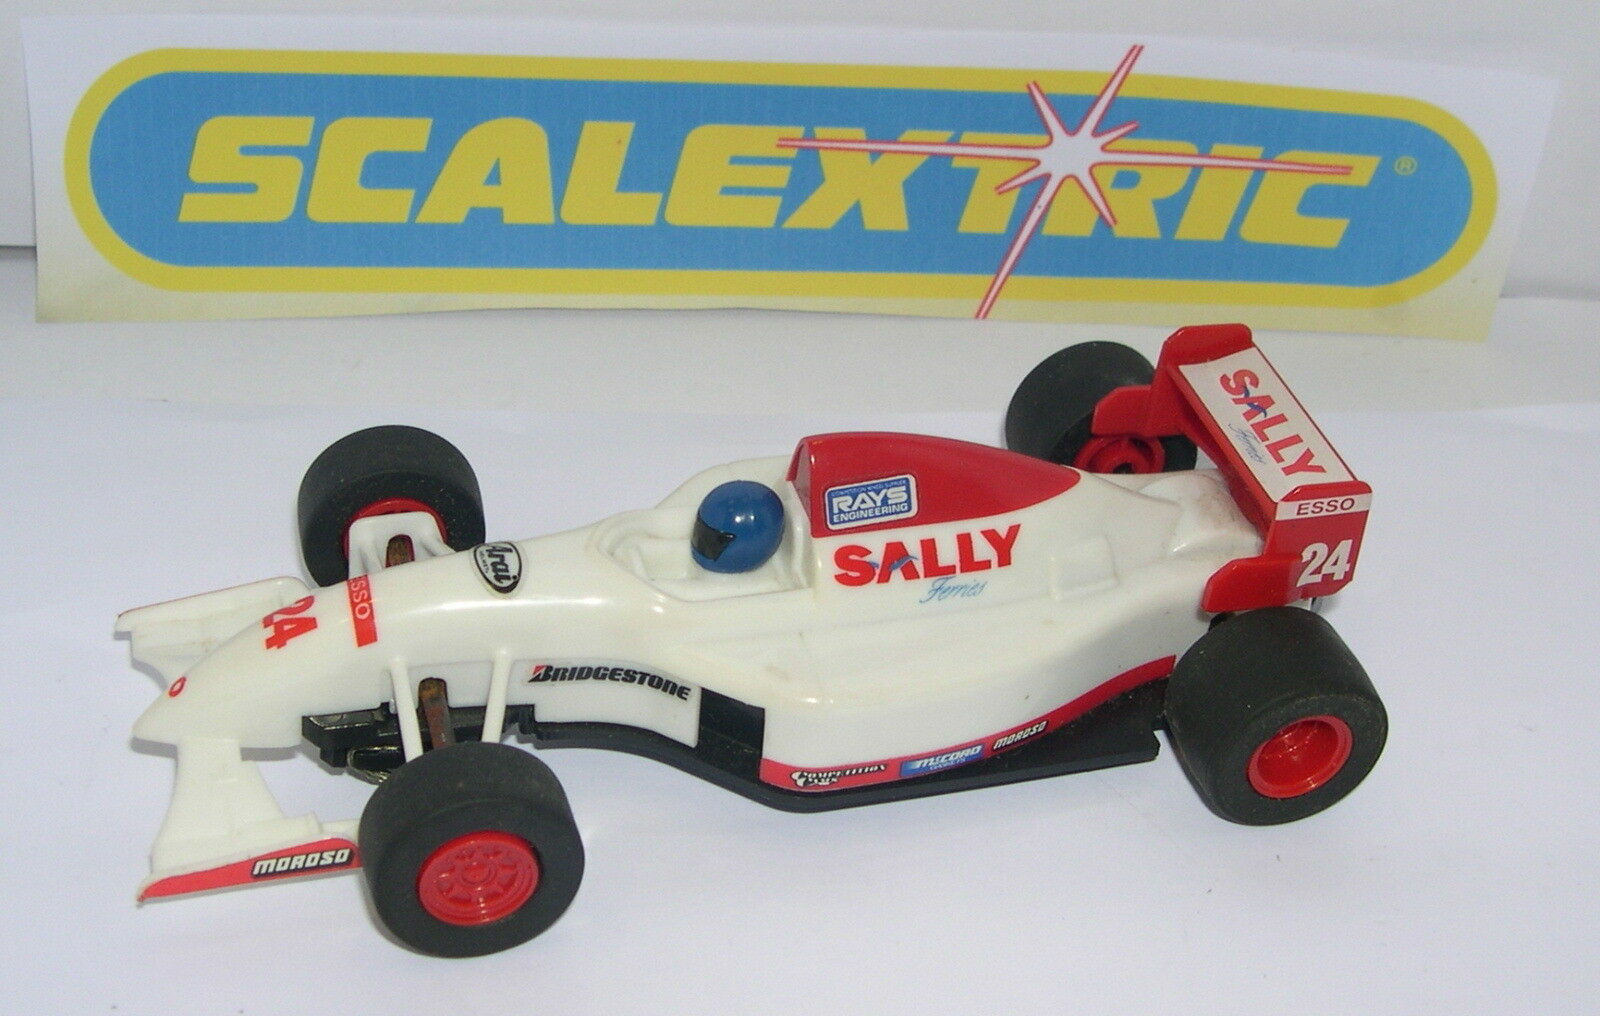 SCALEXTRIC C-693  TEAM SALLY FERRIES    24     ONLY SET C-653   MINT UNBOXED